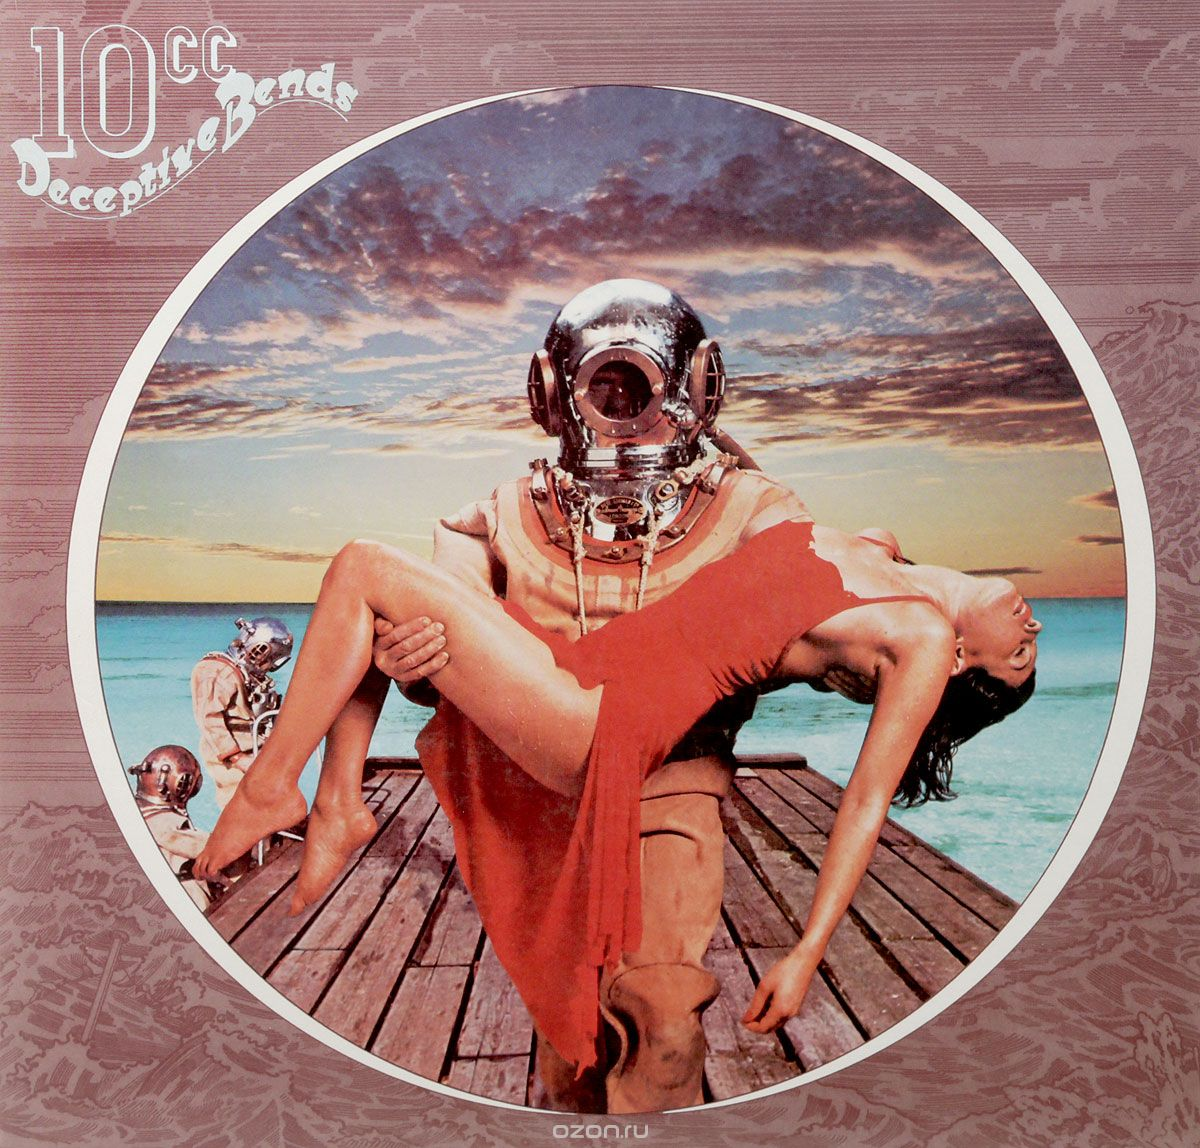 10CC. Deceptive Bends (LP)